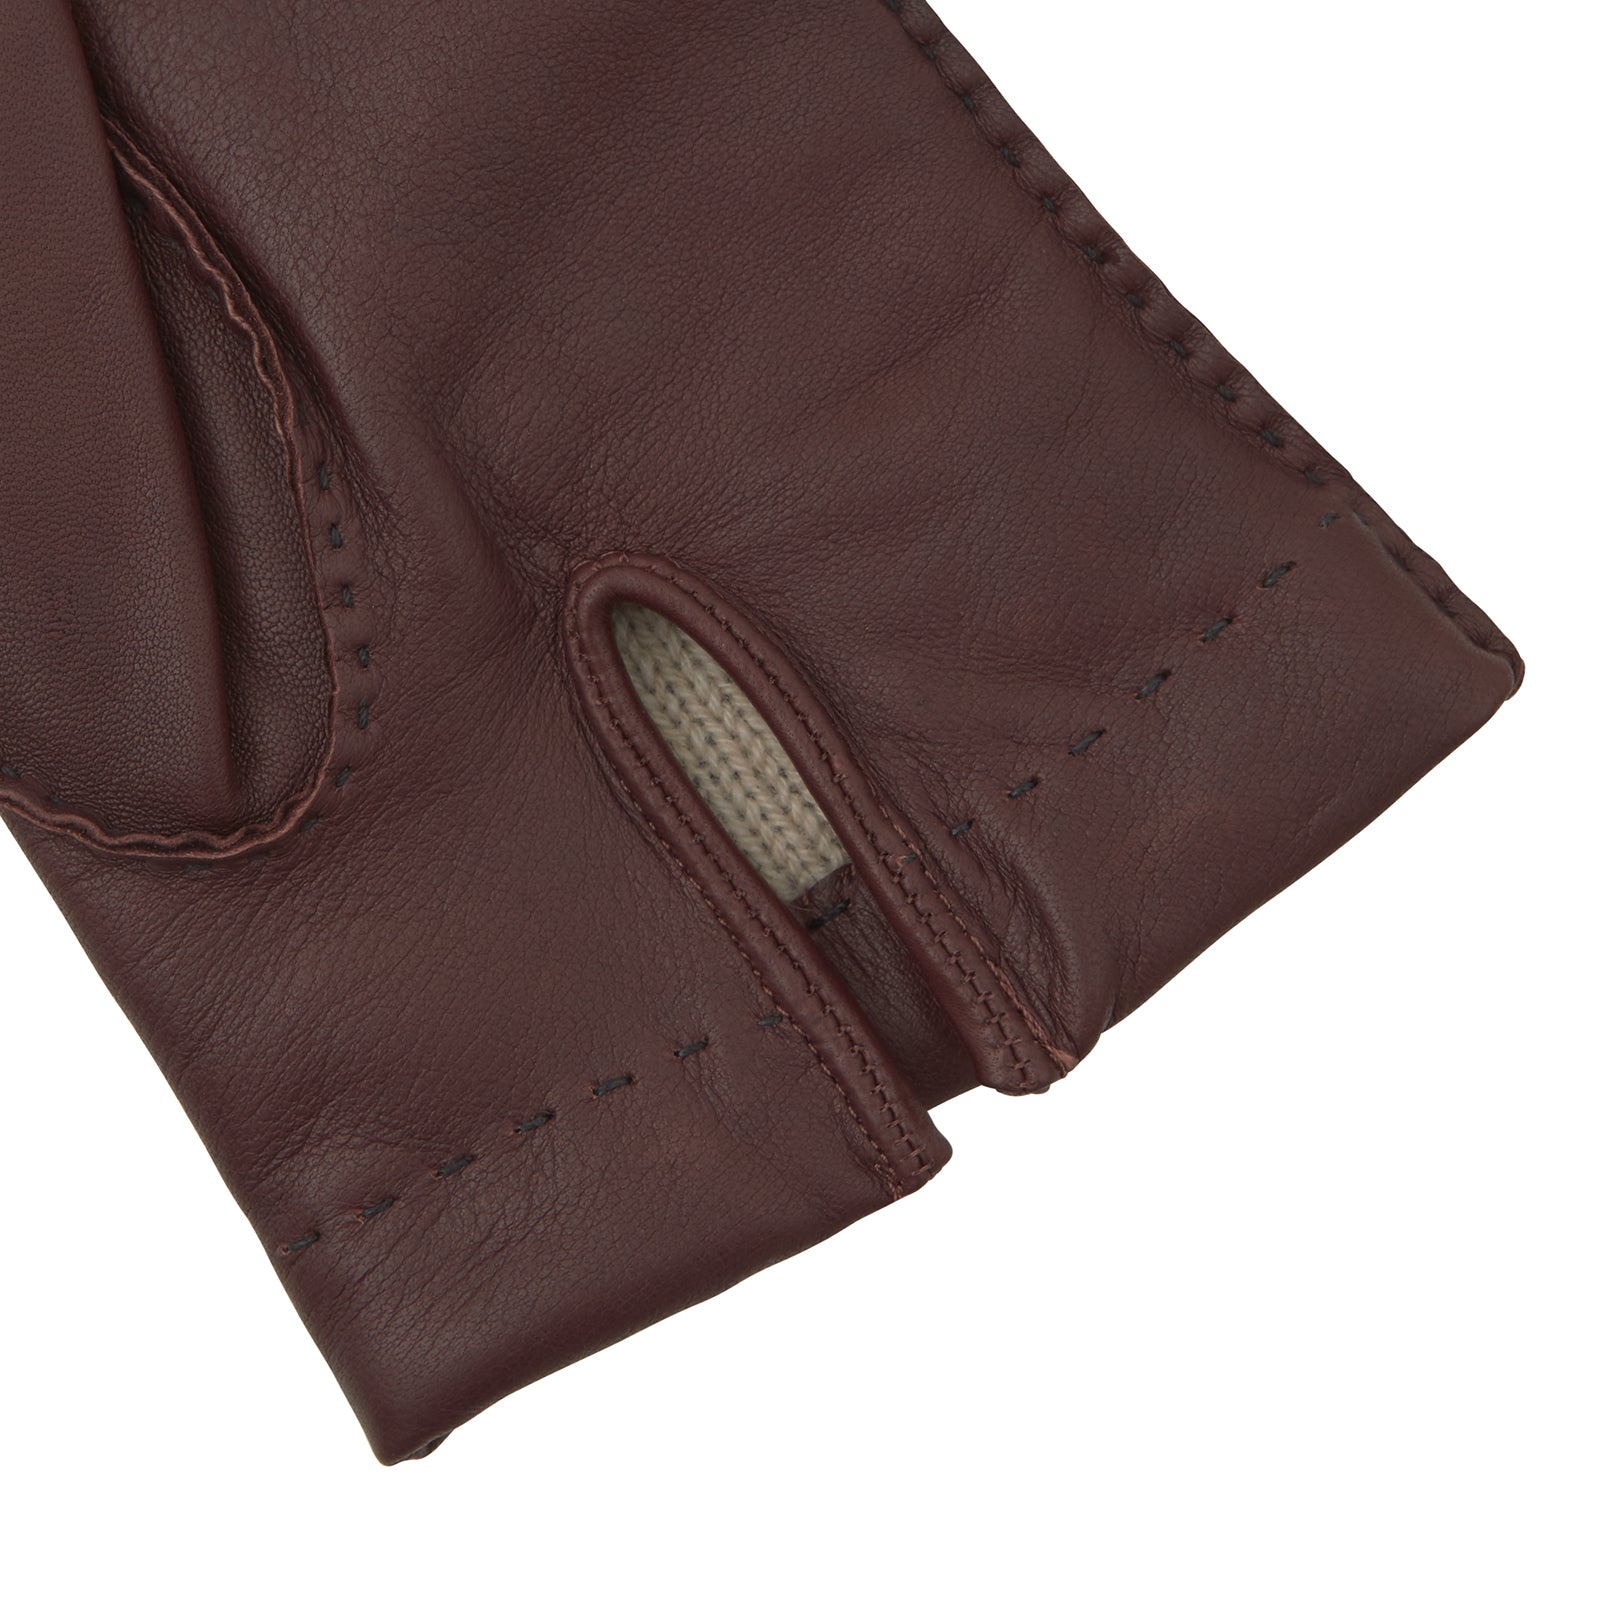 Brown Hairsheep Leather Gloves